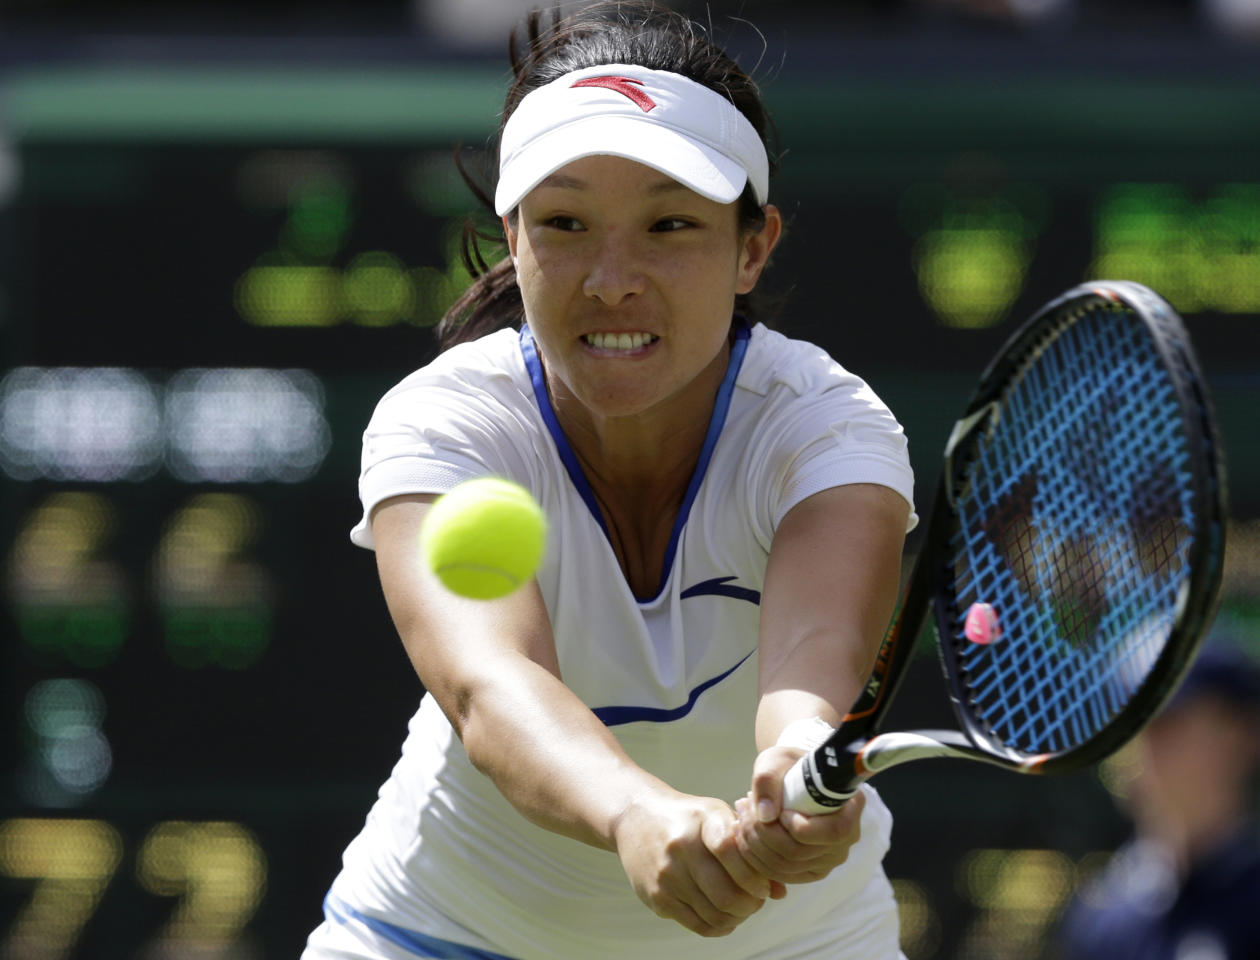 Zheng Jie of China plays a return to Serena Williams of the United States during a third round women's singles match at the All England Lawn Tennis Championships at Wimbledon, England, Saturday, June 30, 2012. (AP Photo/Anja Niedringhaus)